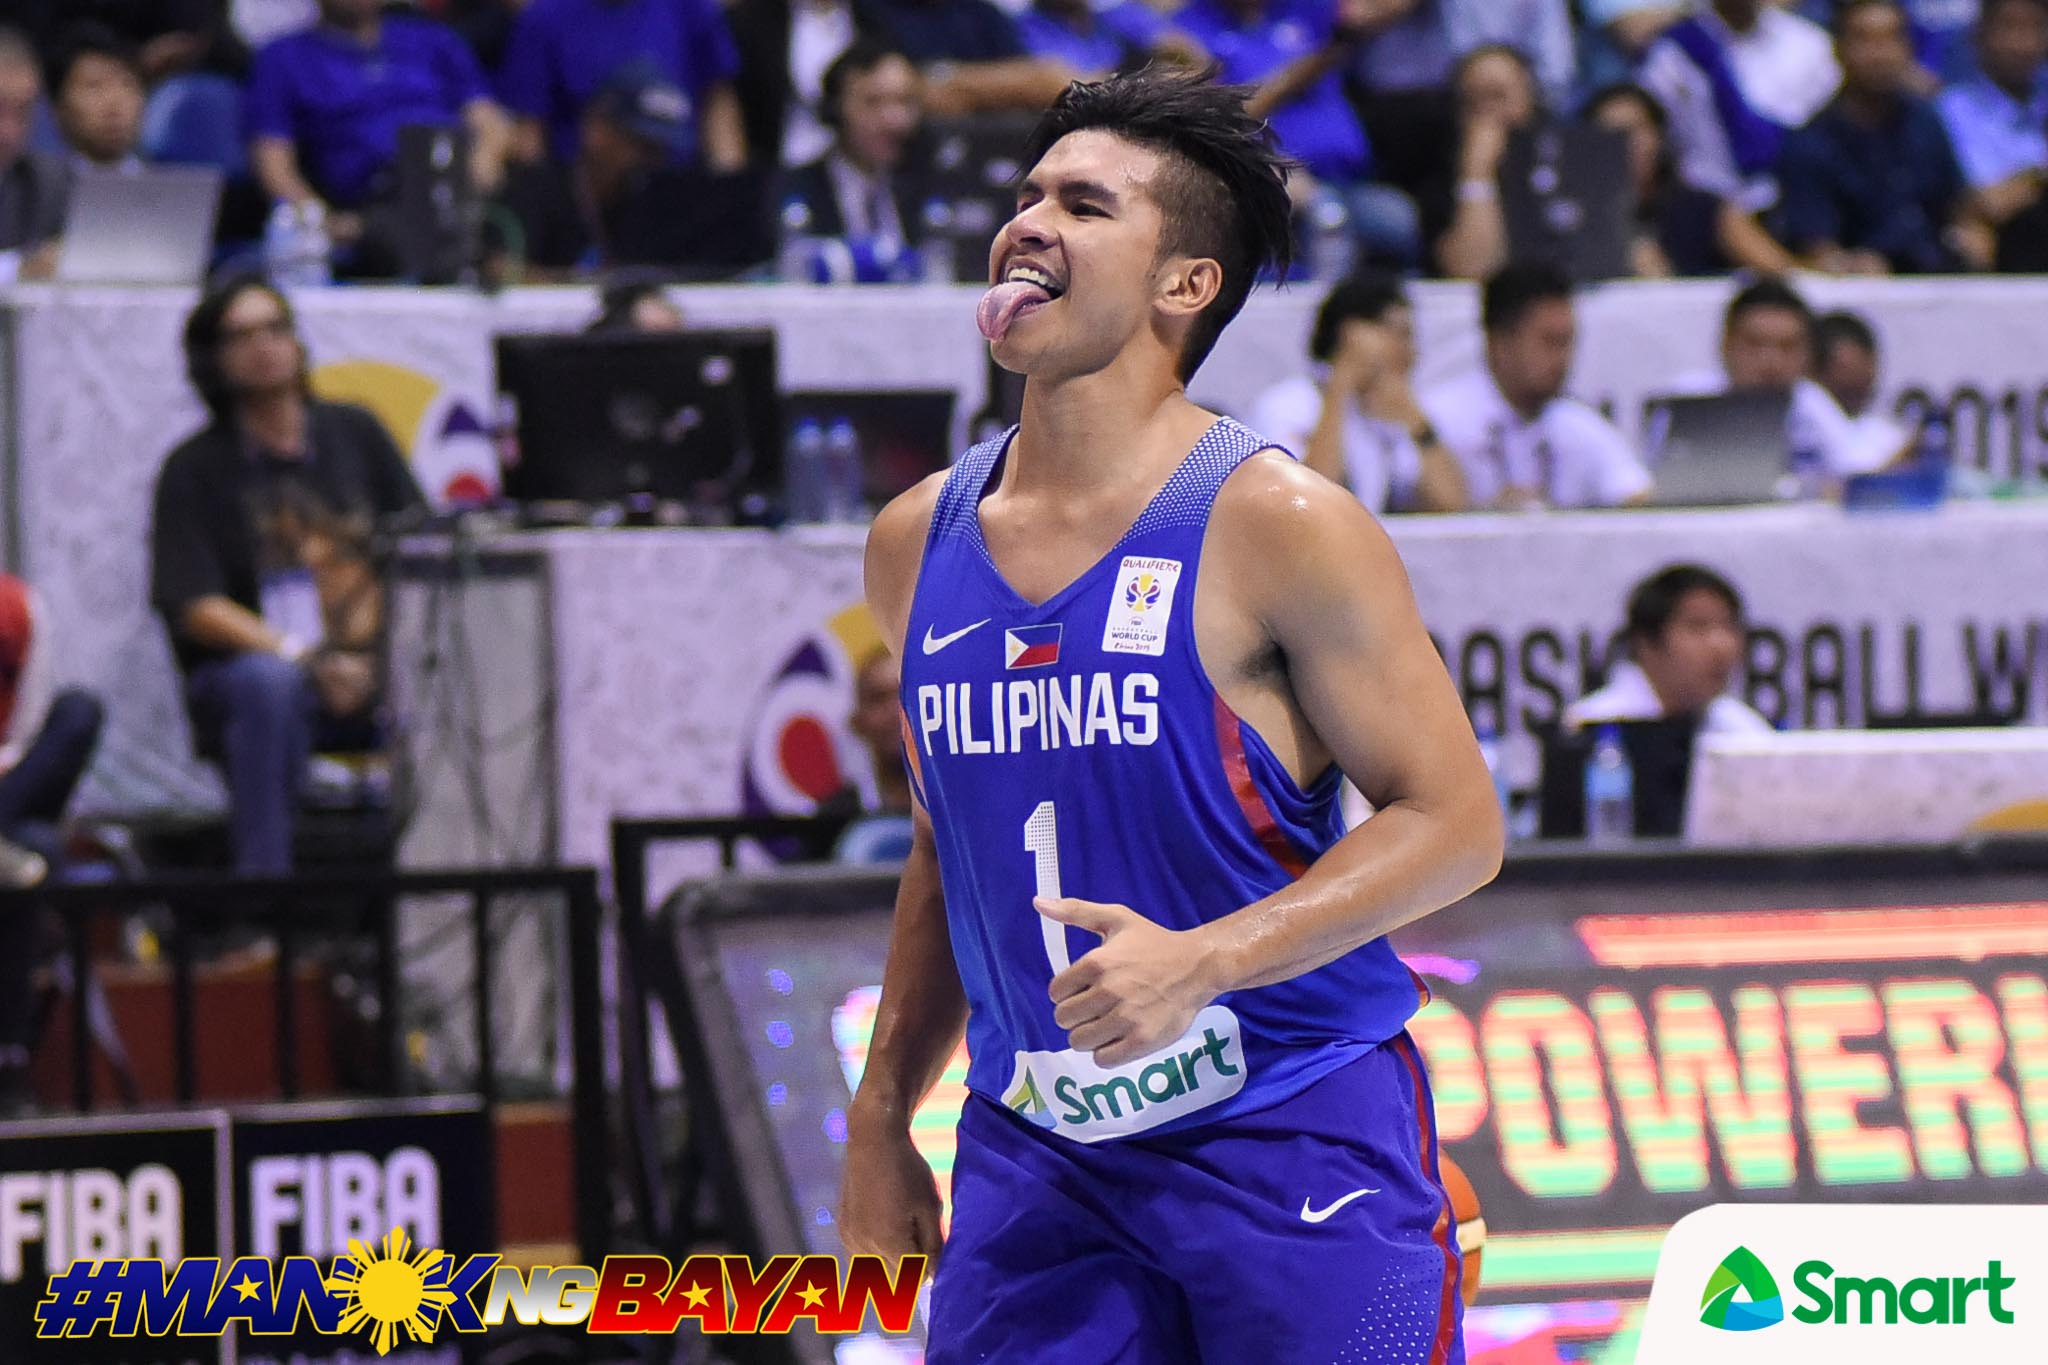 Philippine Sports News - Tiebreaker Times Kiefer Ravena gets surprise text from Terrence Romeo after Japan game: 'Stay composed' 2019 FIBA World Cup Qualifiers Basketball Gilas Pilipinas News  Terrence Romeo Kiefer Ravena Jayson Castro 2019 FIBA World Cup Qualifiers Group B